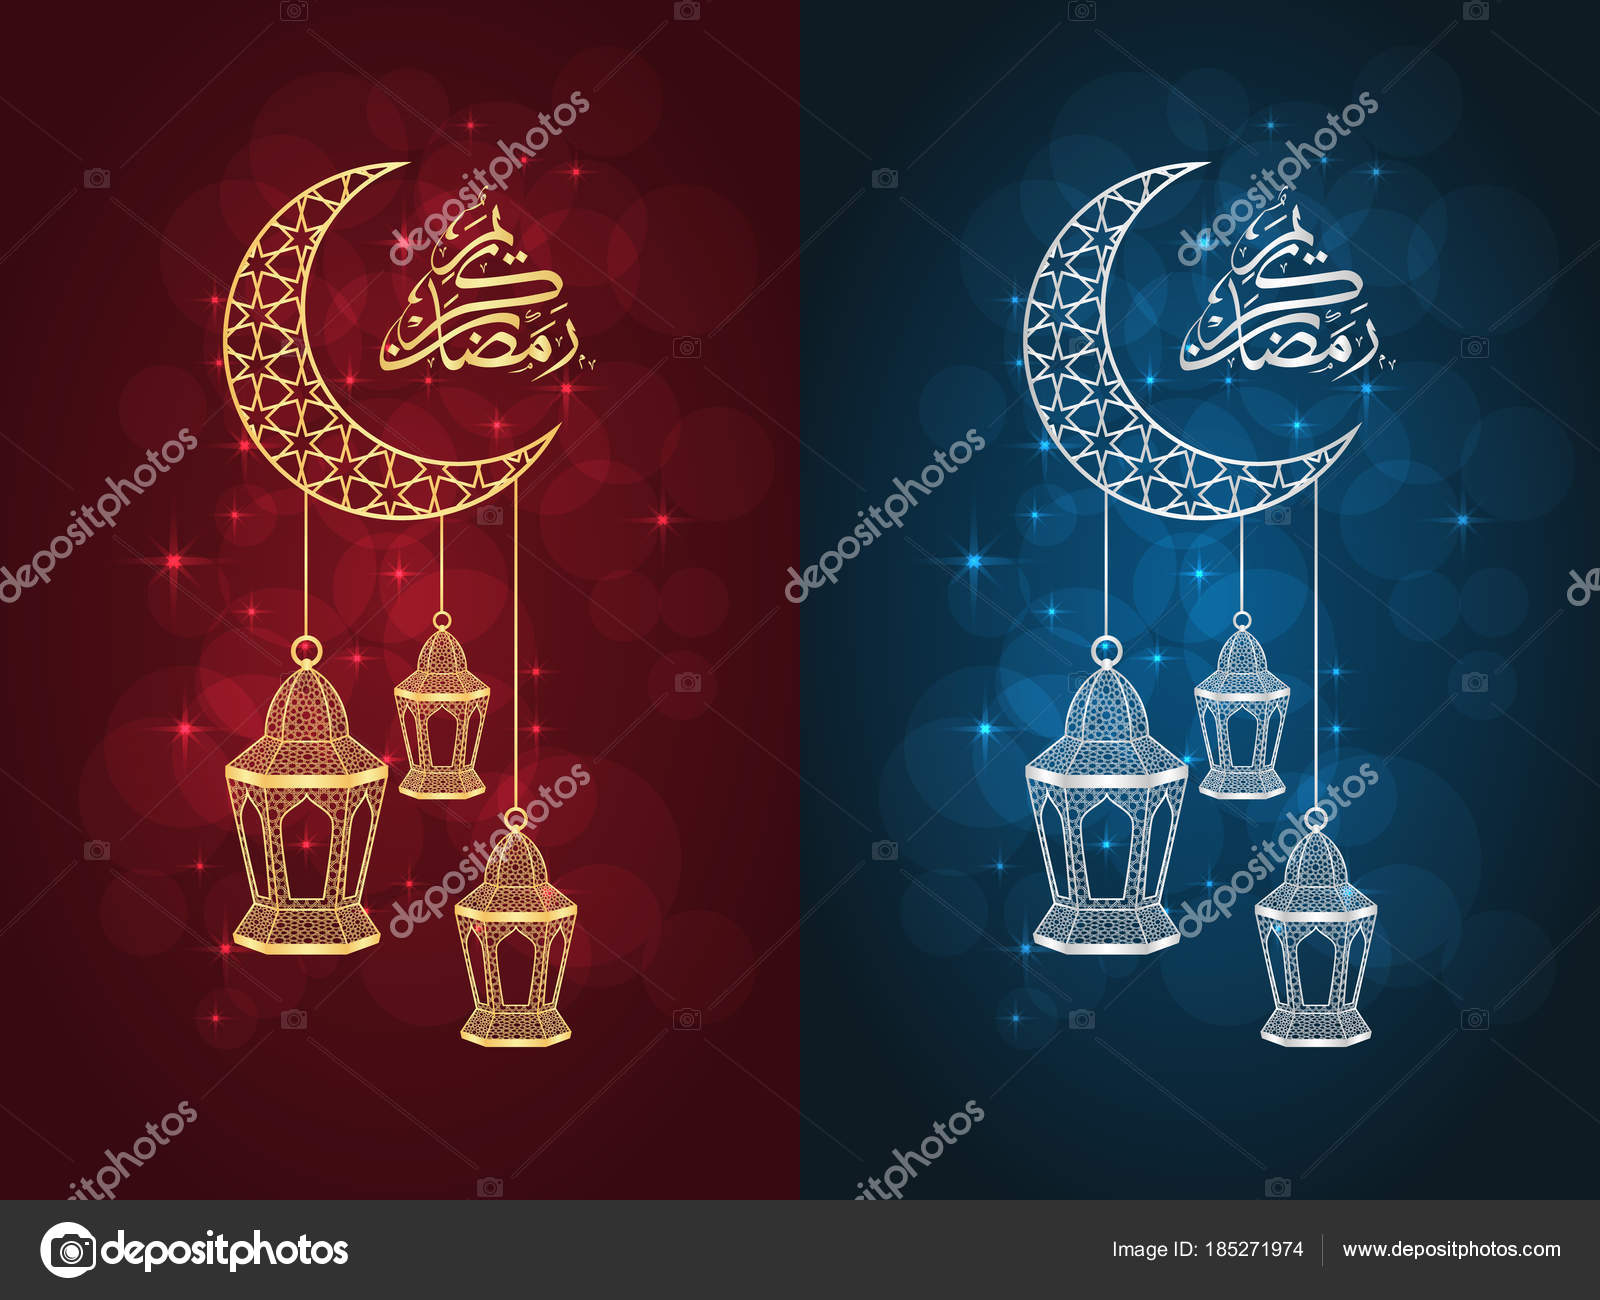 Two ramadan greeting cards stock vector nataly nete 185271974 two ramadan greeting cards stock vector m4hsunfo